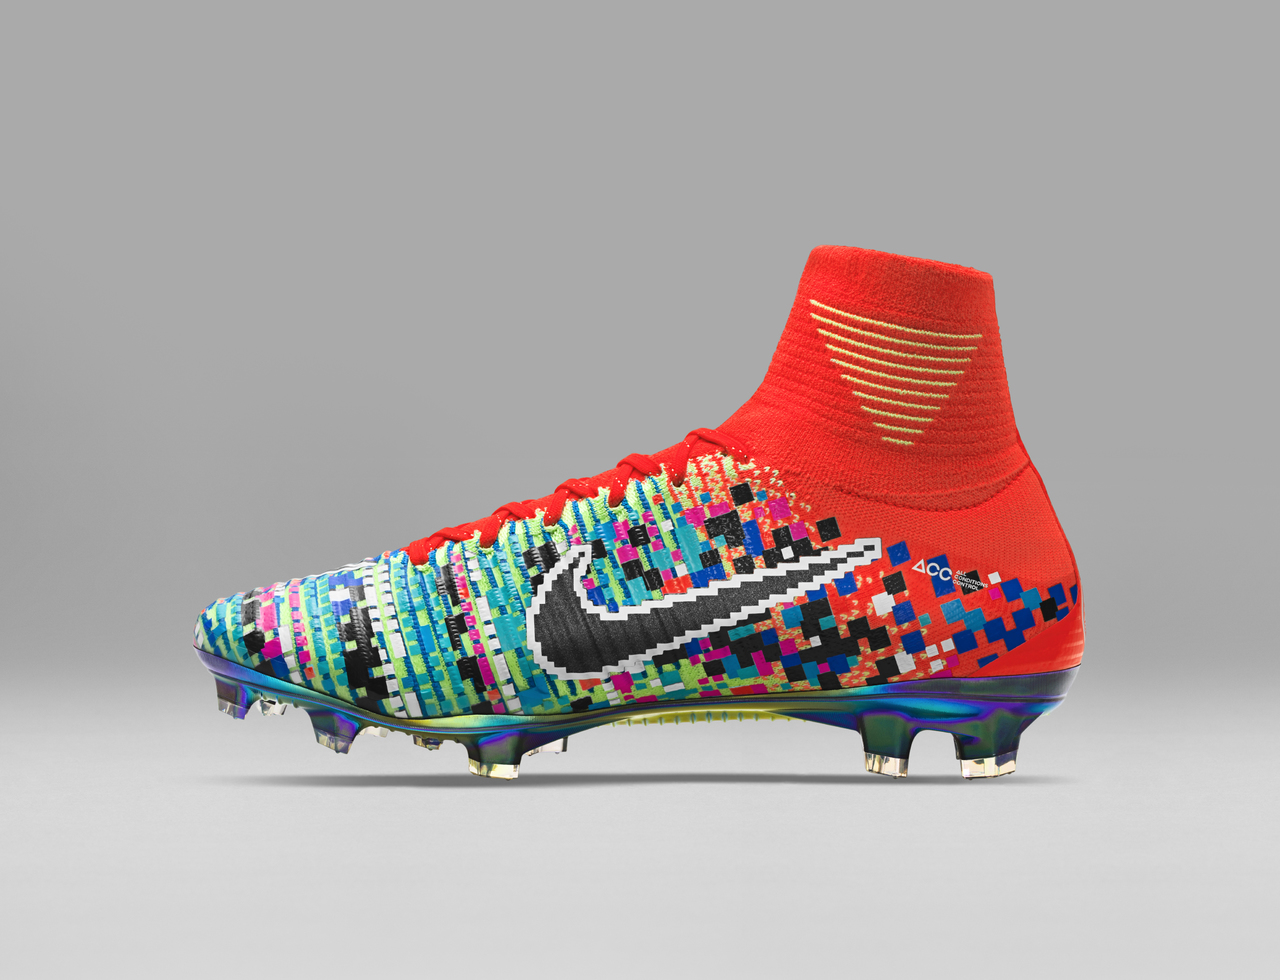 Nike Mercurial Superfly X Ea Sports Football Boots